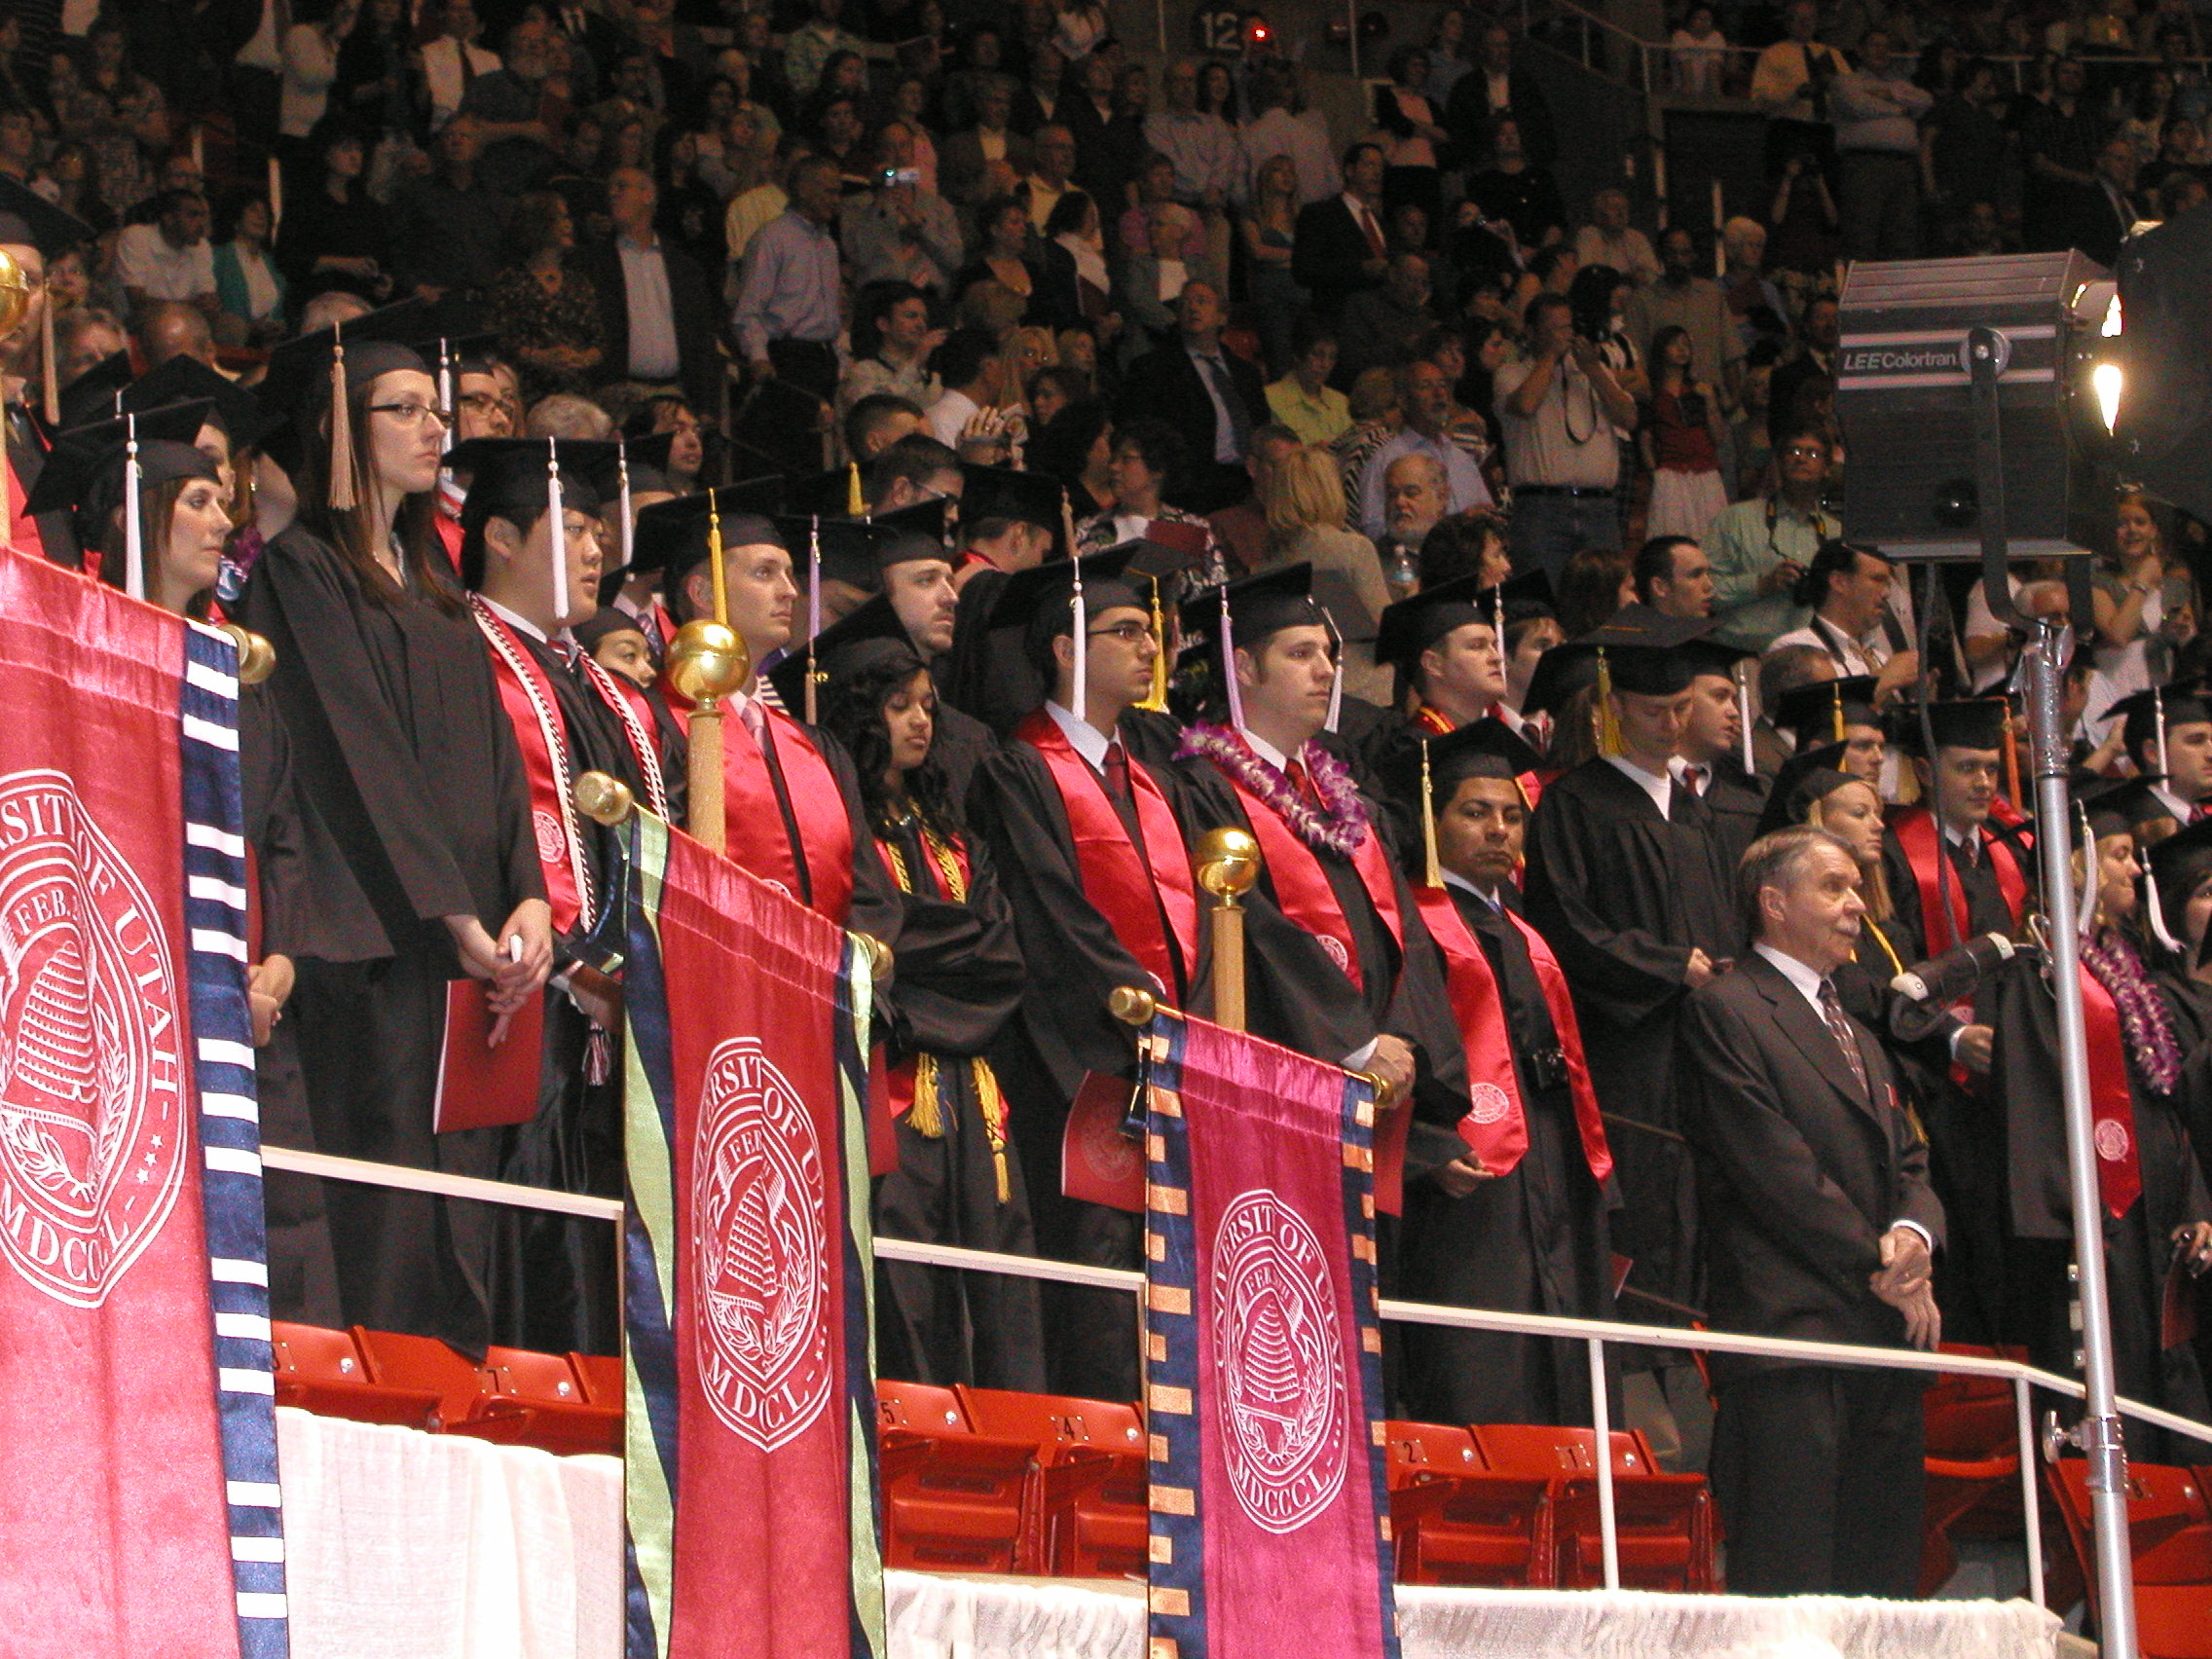 University of Utah students attend the 2009 Commencement ceremony.